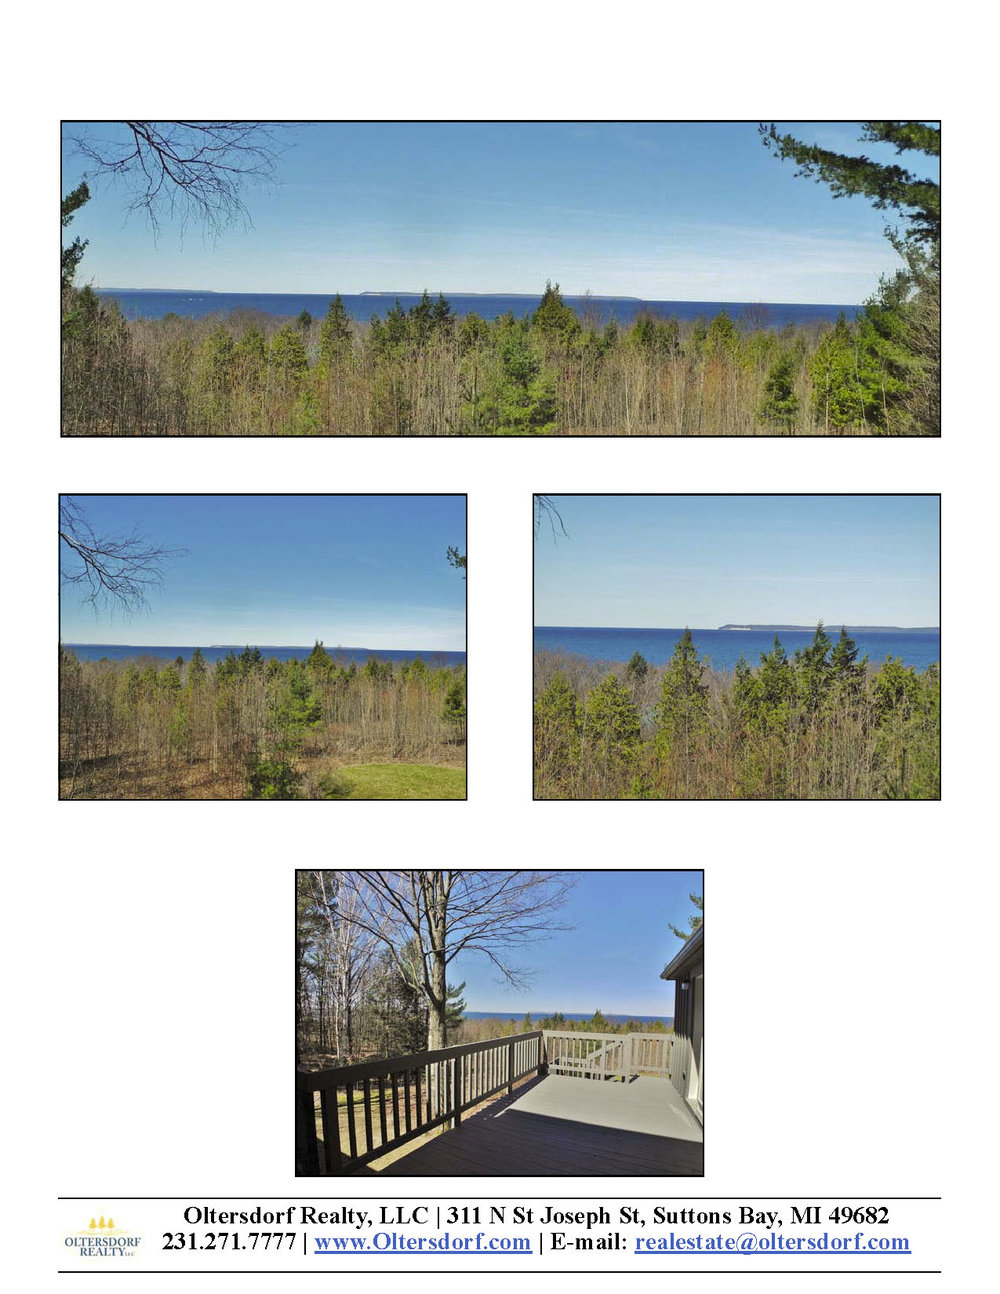 564 S Woodsmoke Drive, Lake Leelanau, MI – Sunset Lake Michigan Water Views - For Sale by Oltersdorf Realty - Marketing Packet (2).jpg